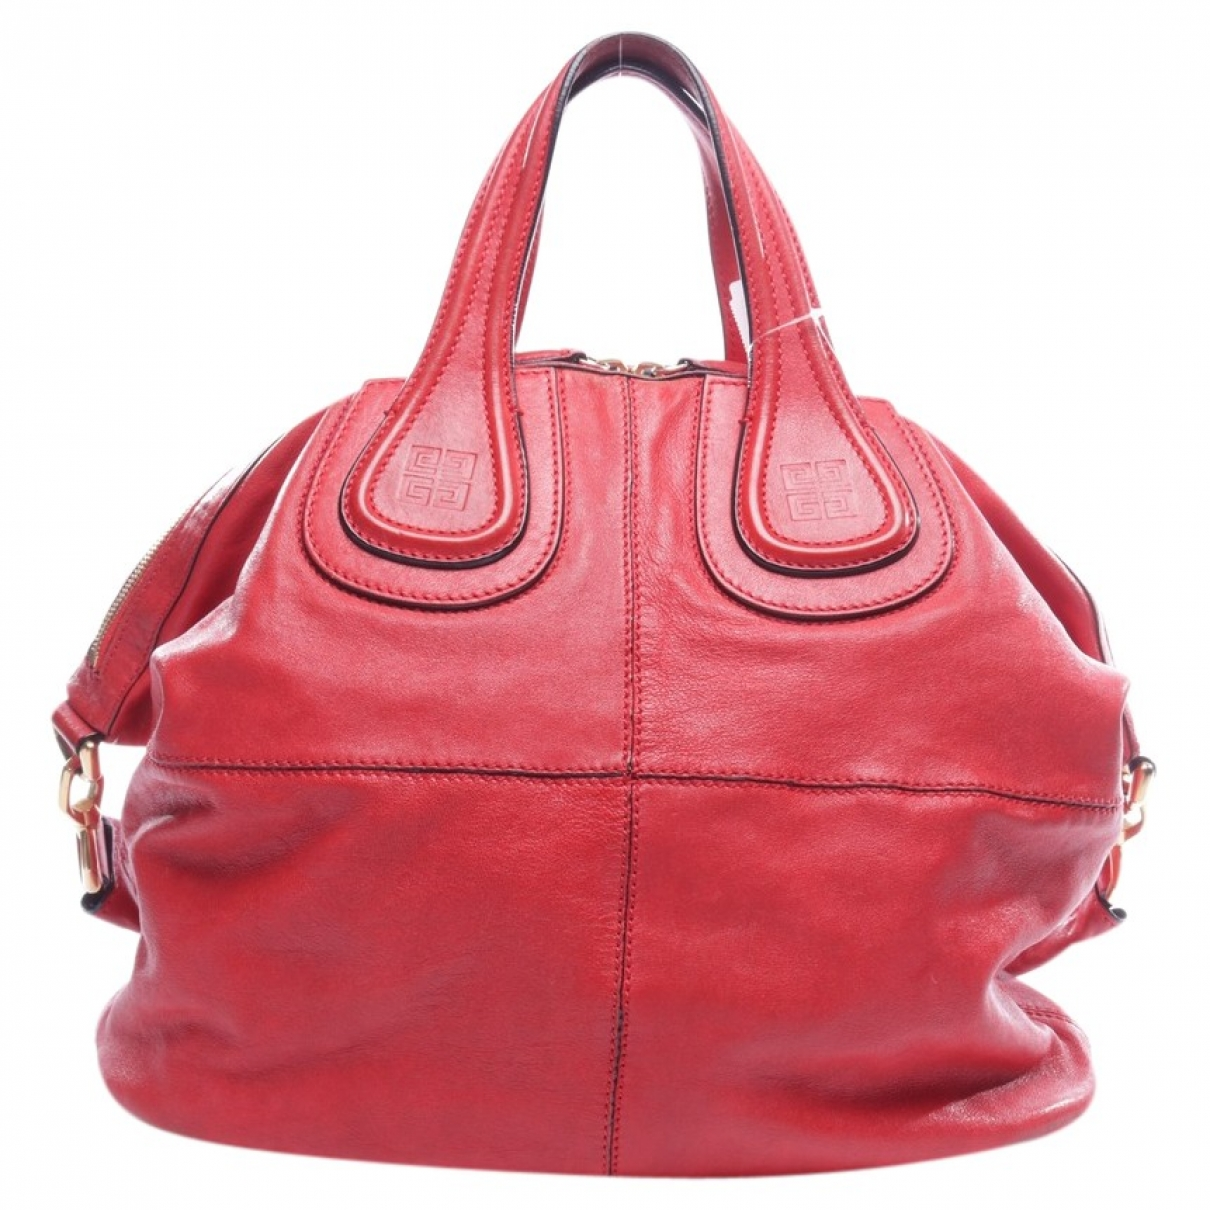 Givenchy Nightingale Red Leather handbag for Women \N